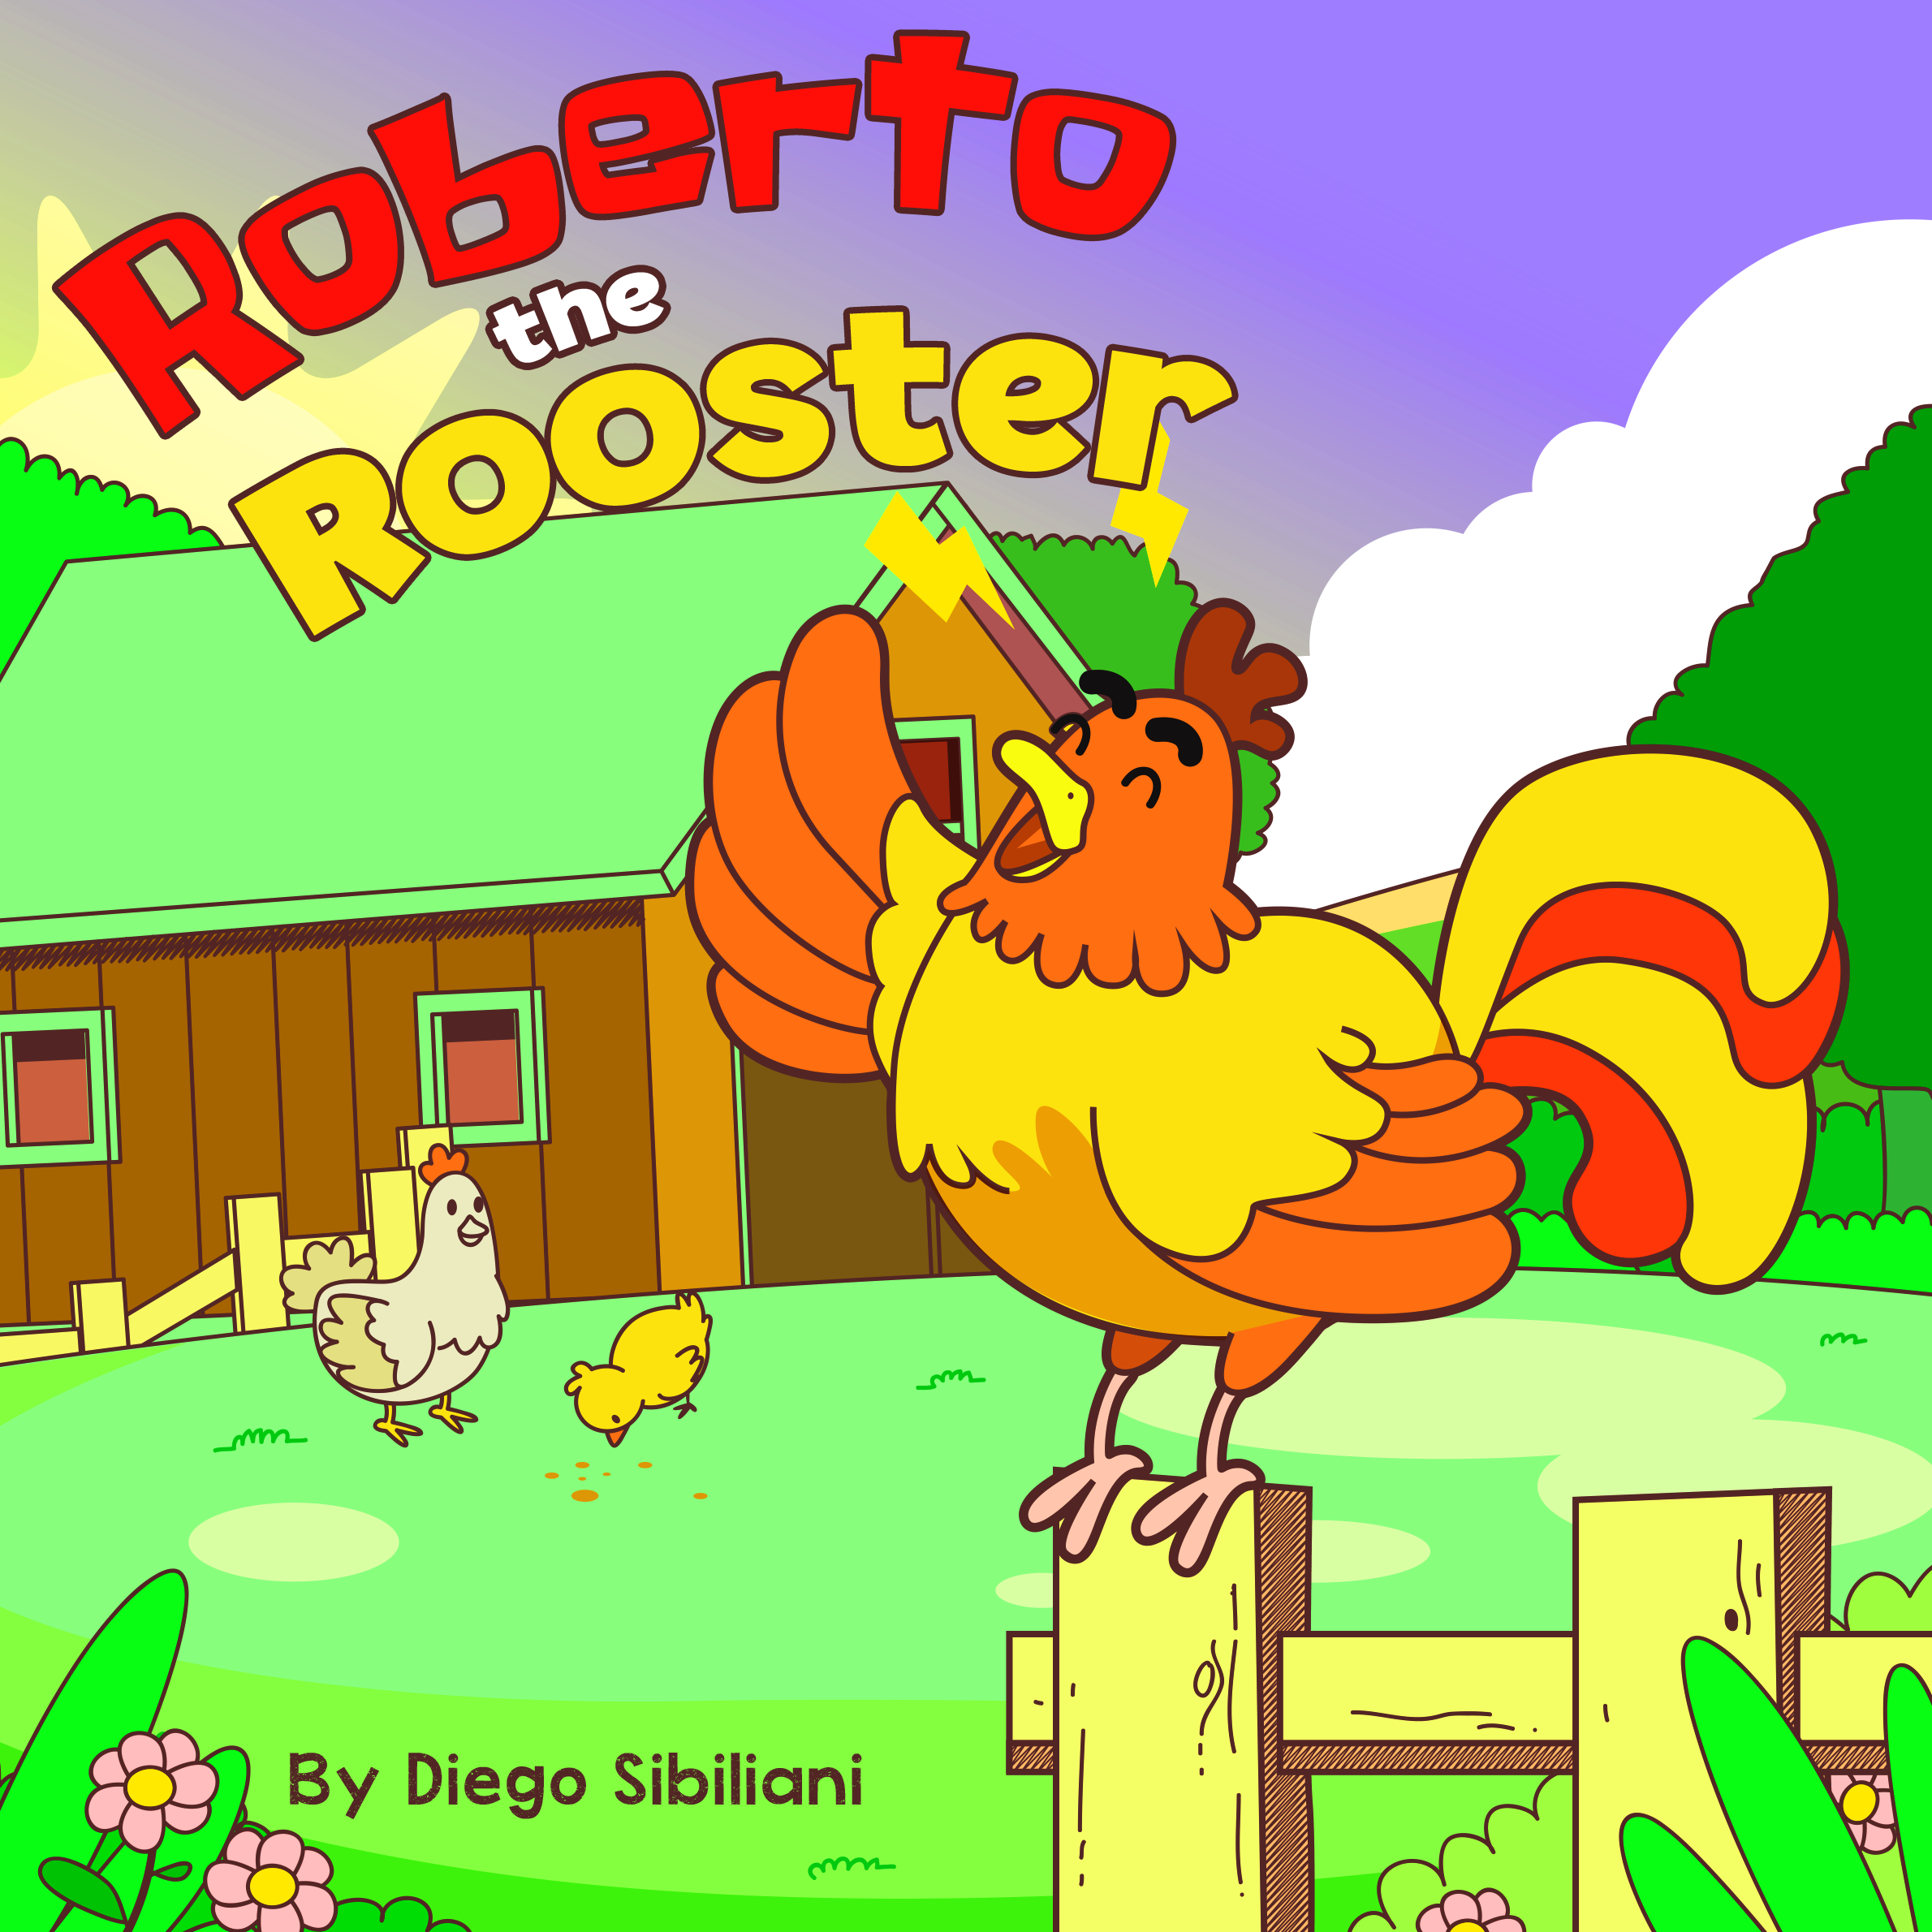 Roberto the Rooster